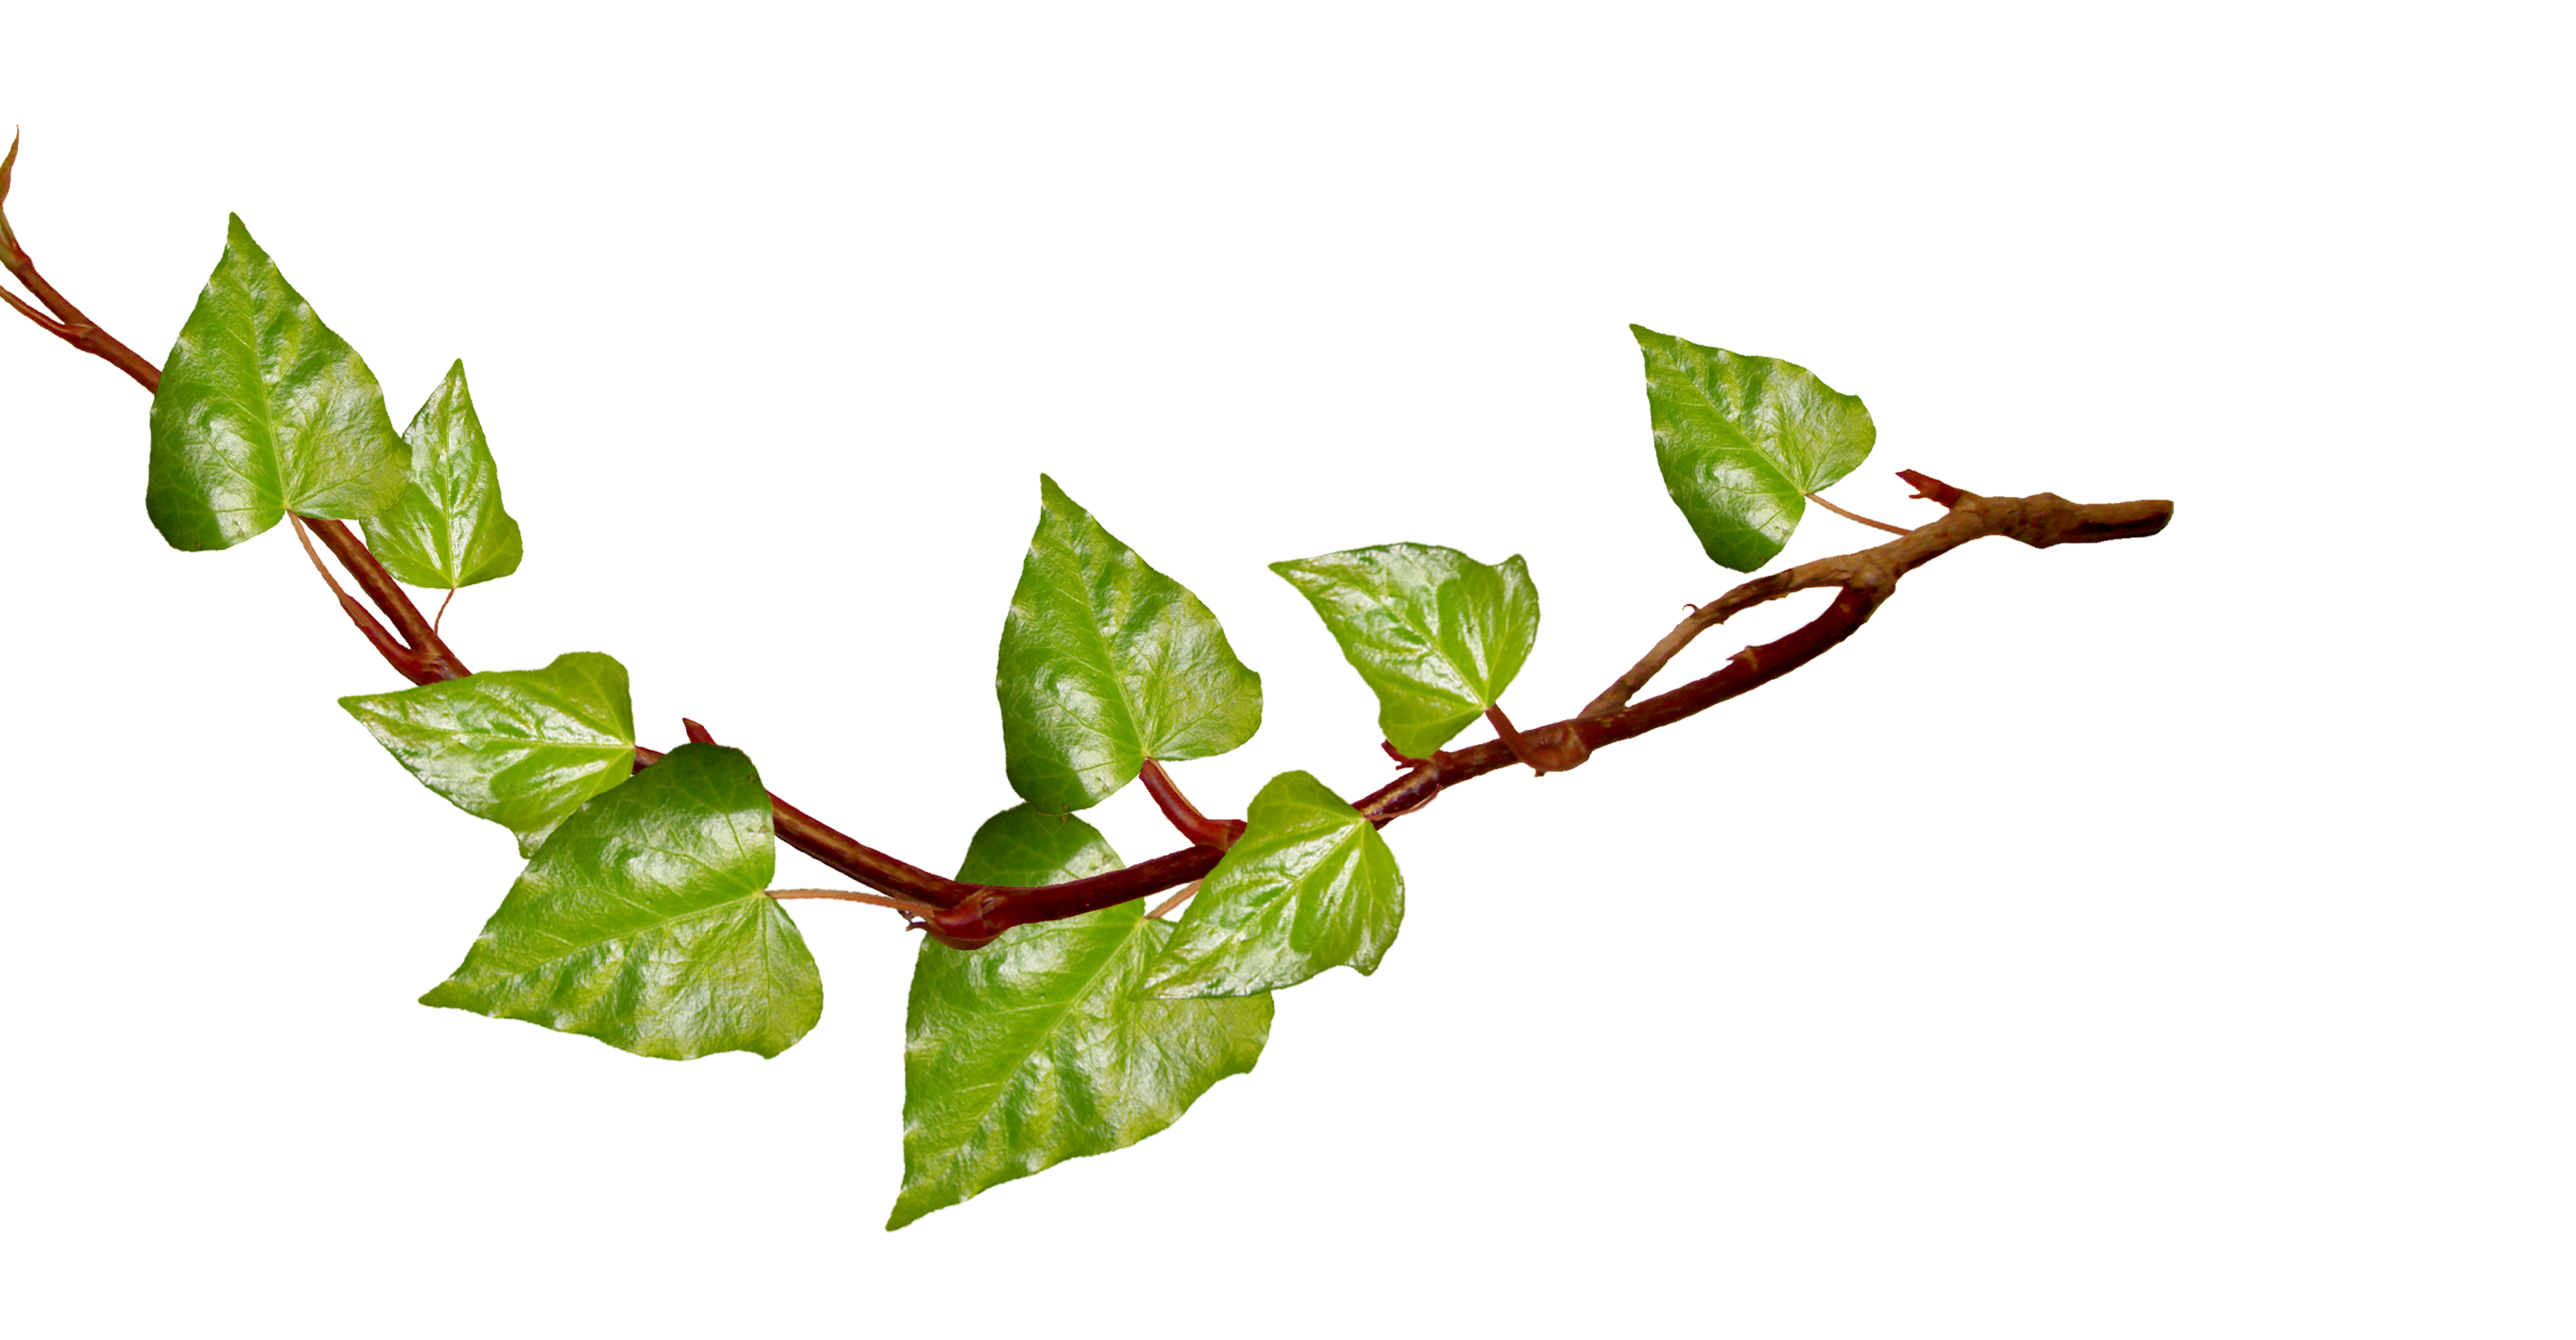 11 Ivy Png Free Cliparts That You Can Download To You Computer And Use